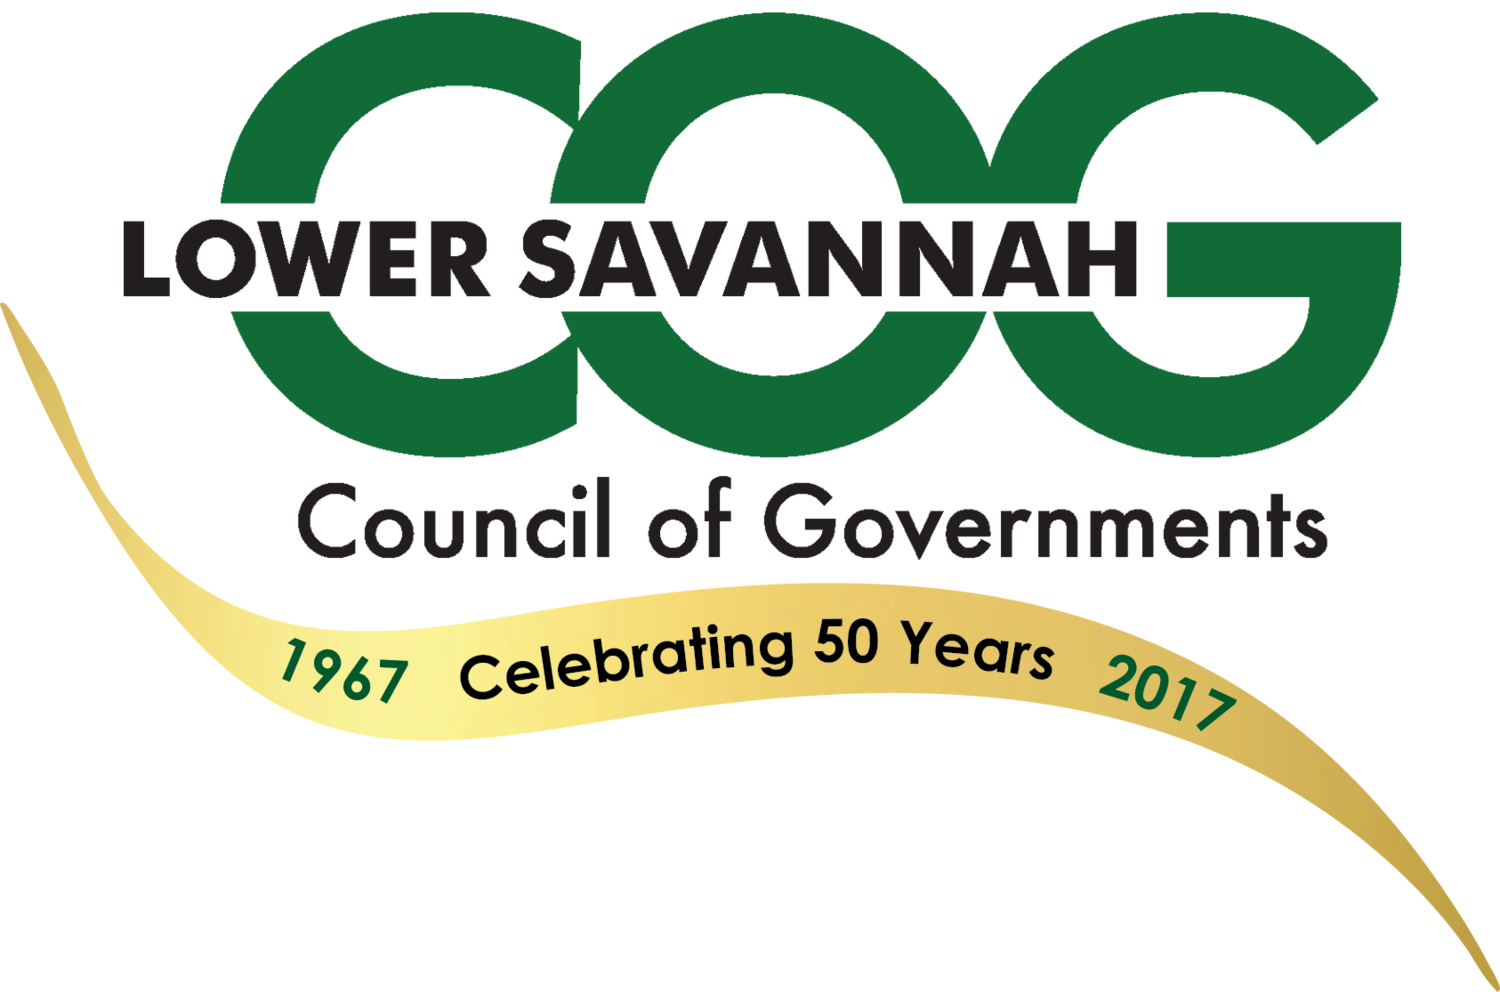 Lower Savannah Council of Governments